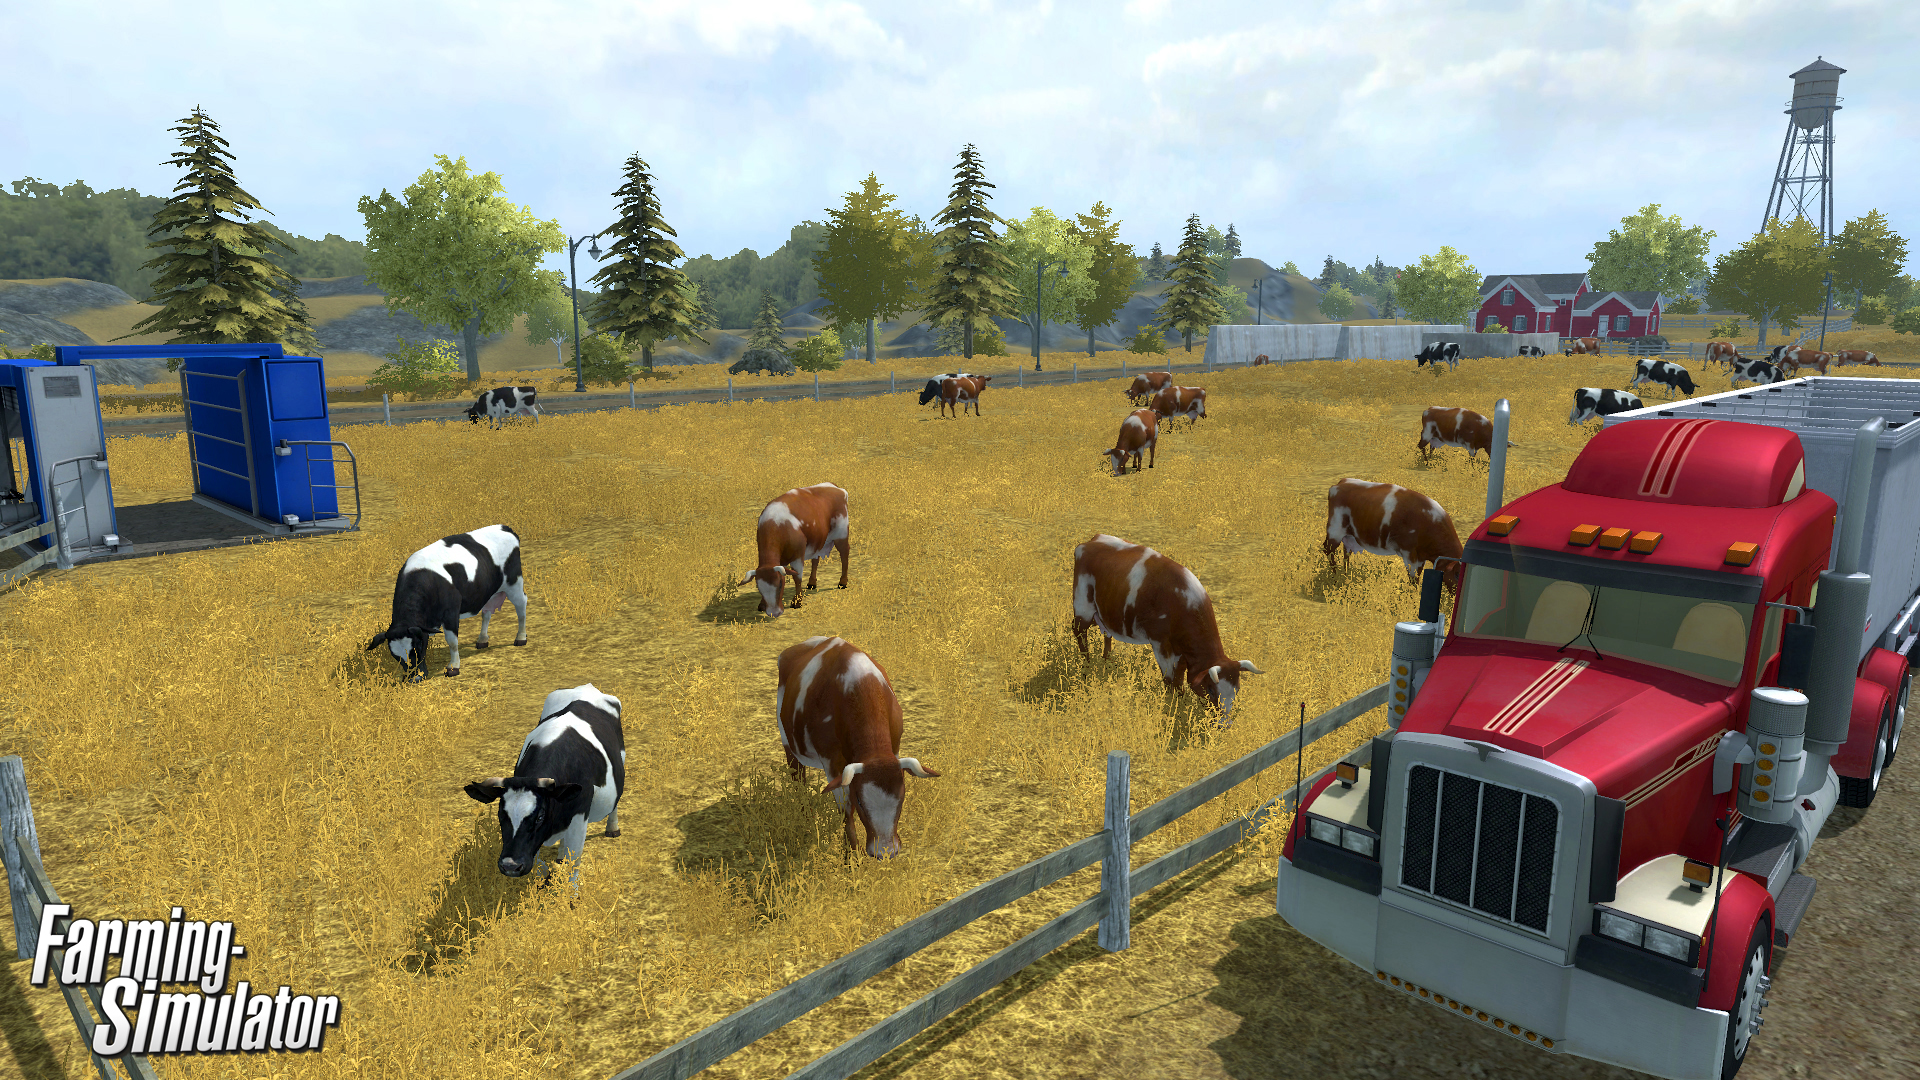 Farming Simulator is soon to be arriving on consoles, with all of its